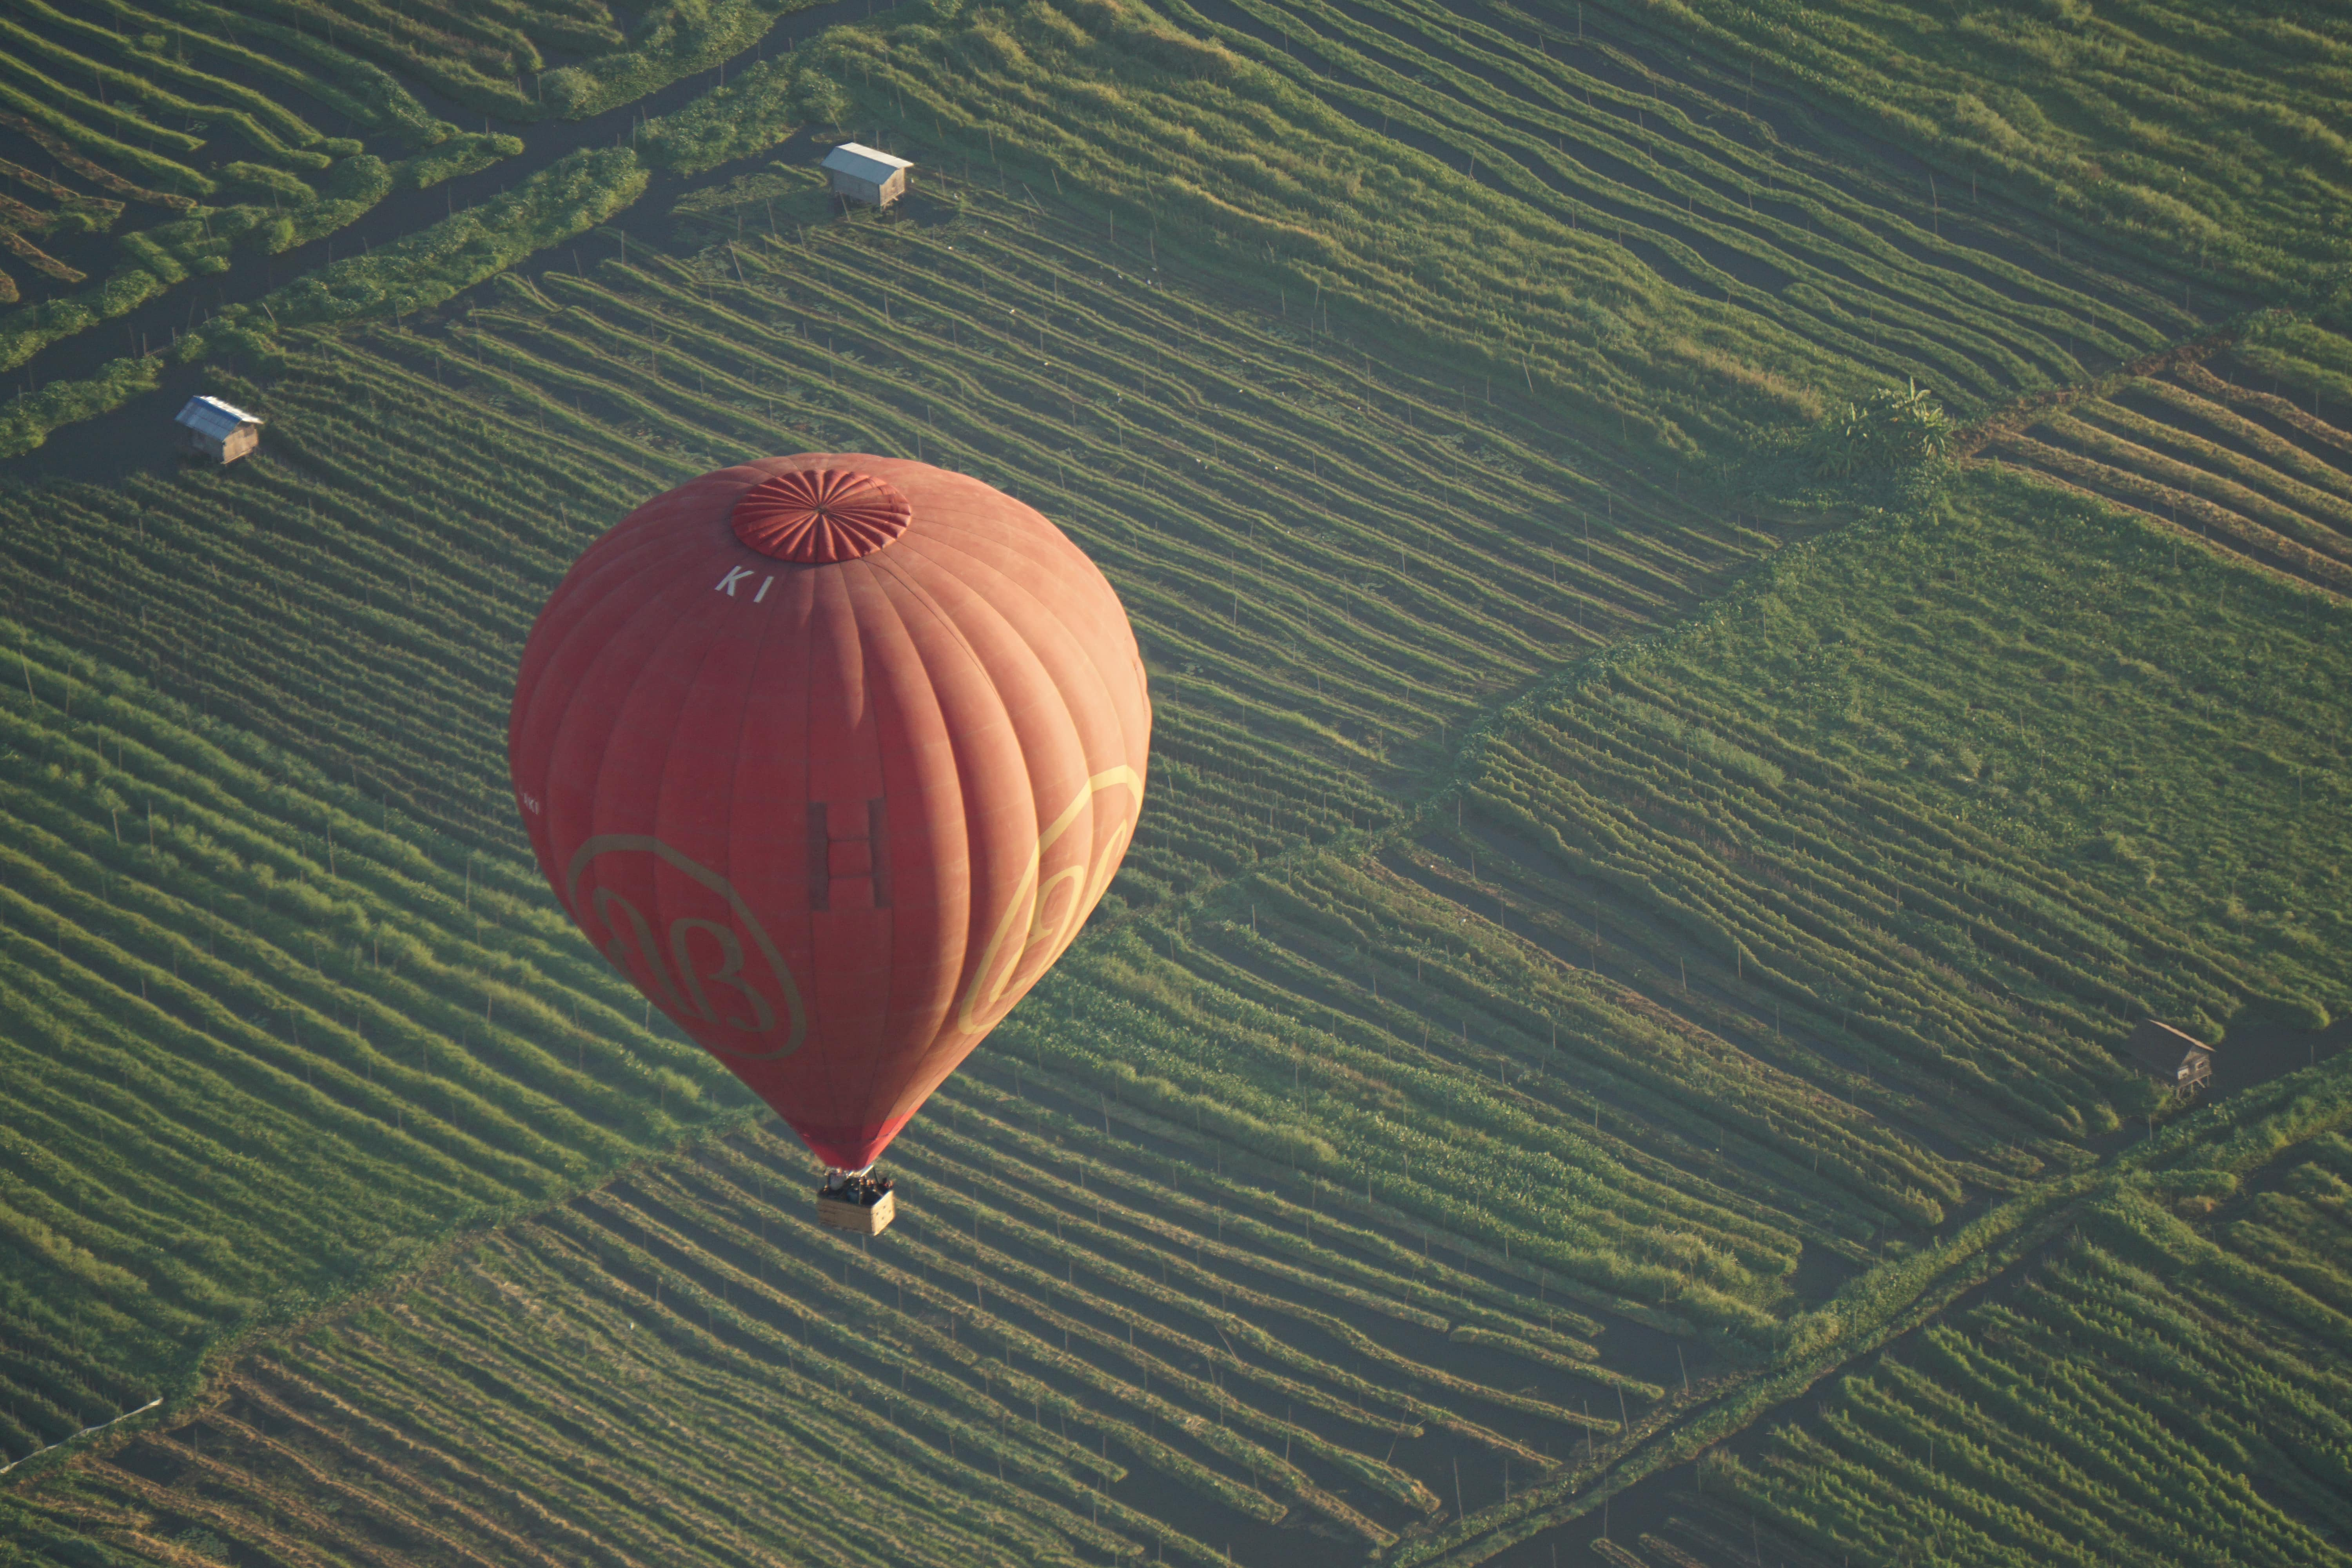 Ballooning in Inle